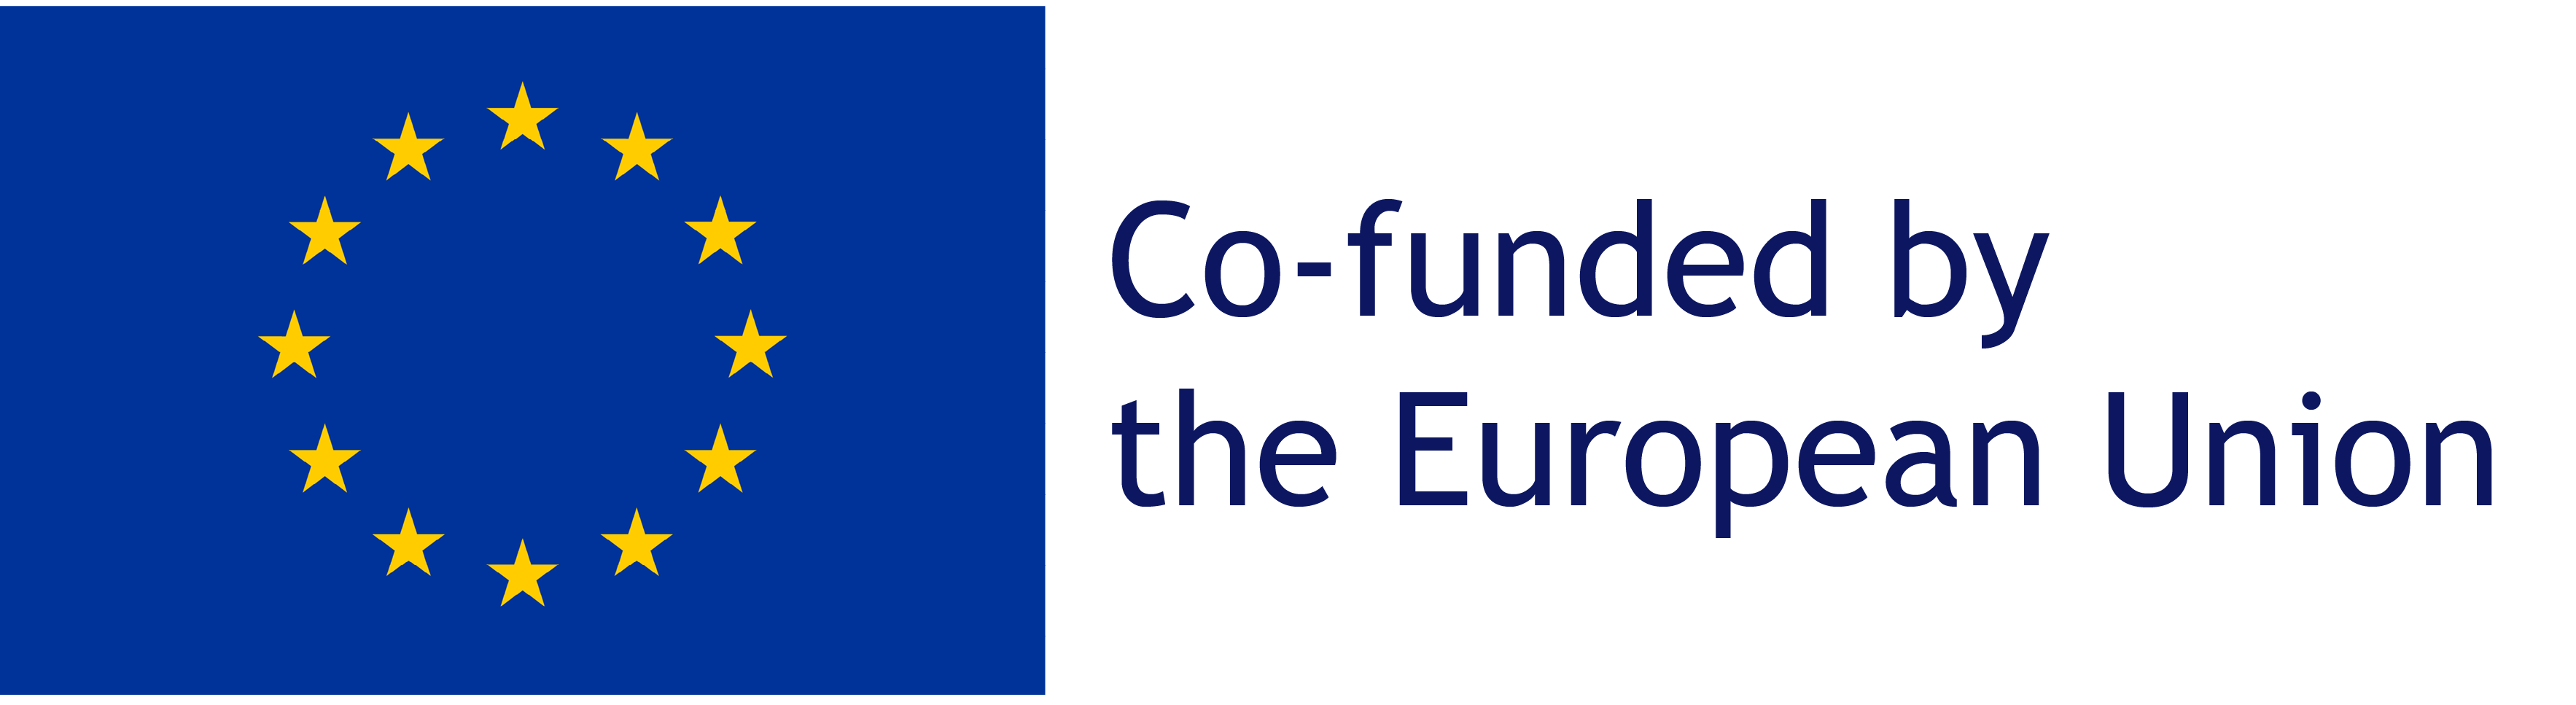 Co Funded by the EU logo ok